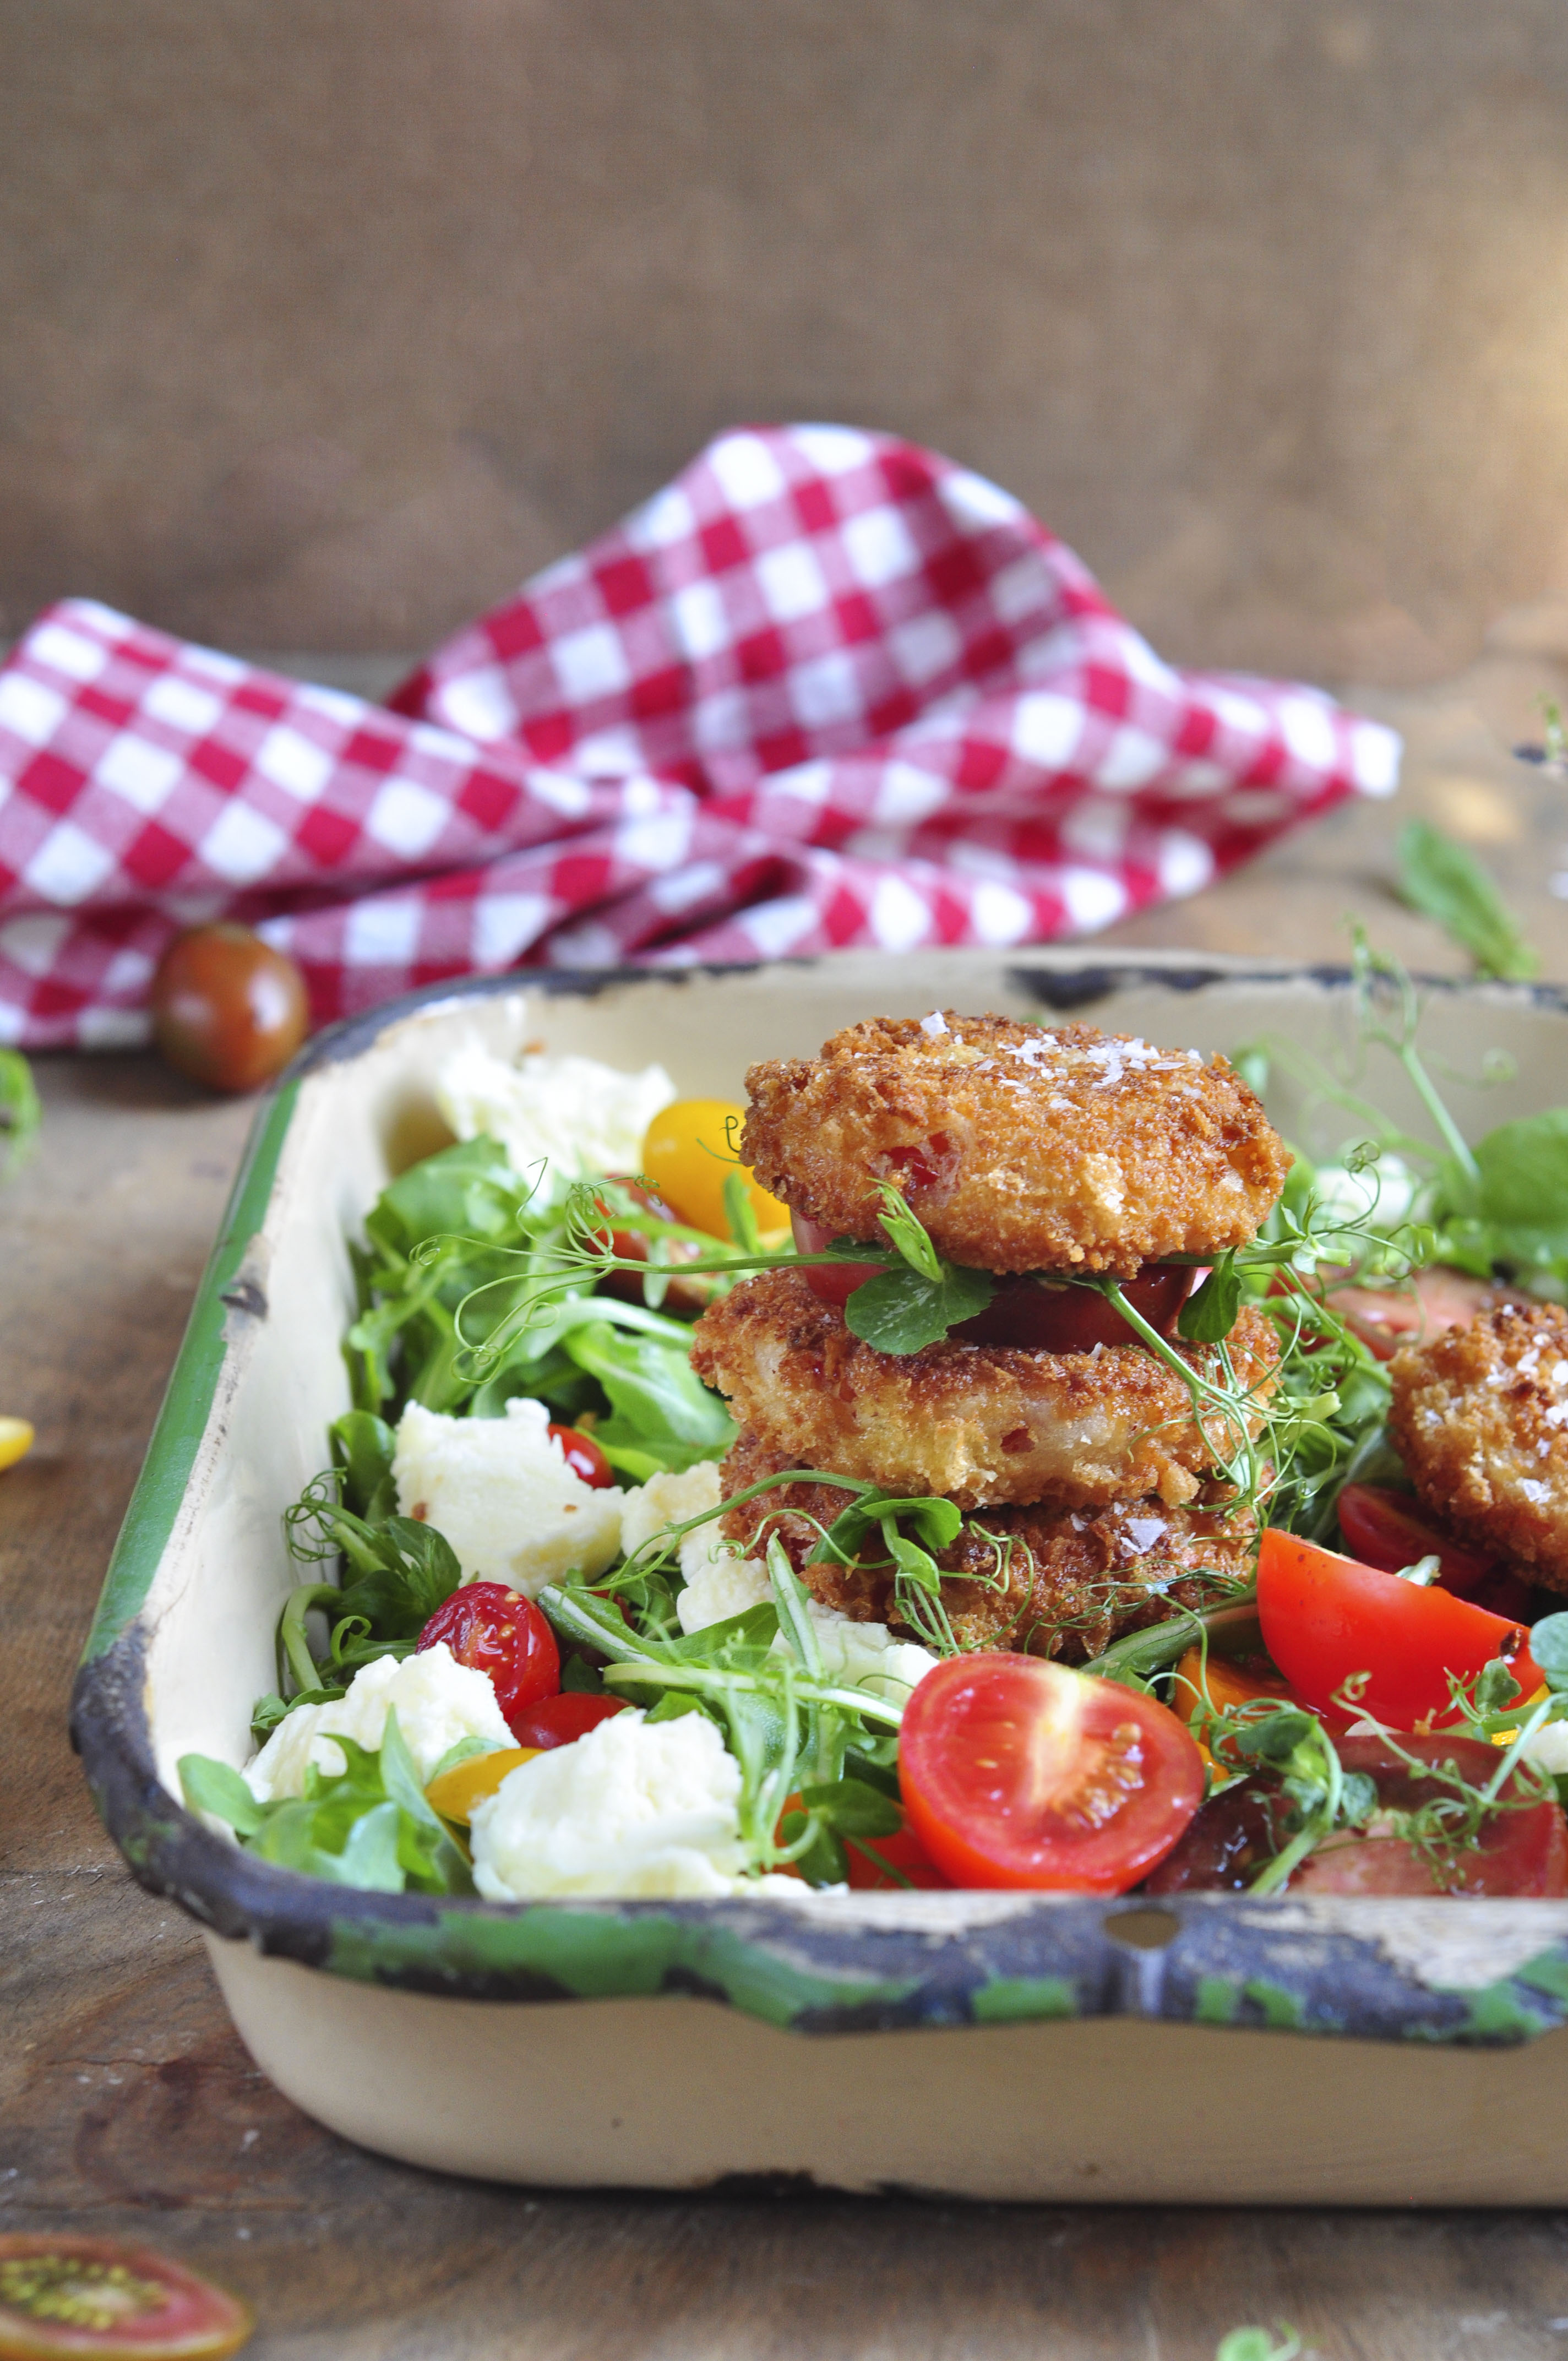 Fried Tomato salad